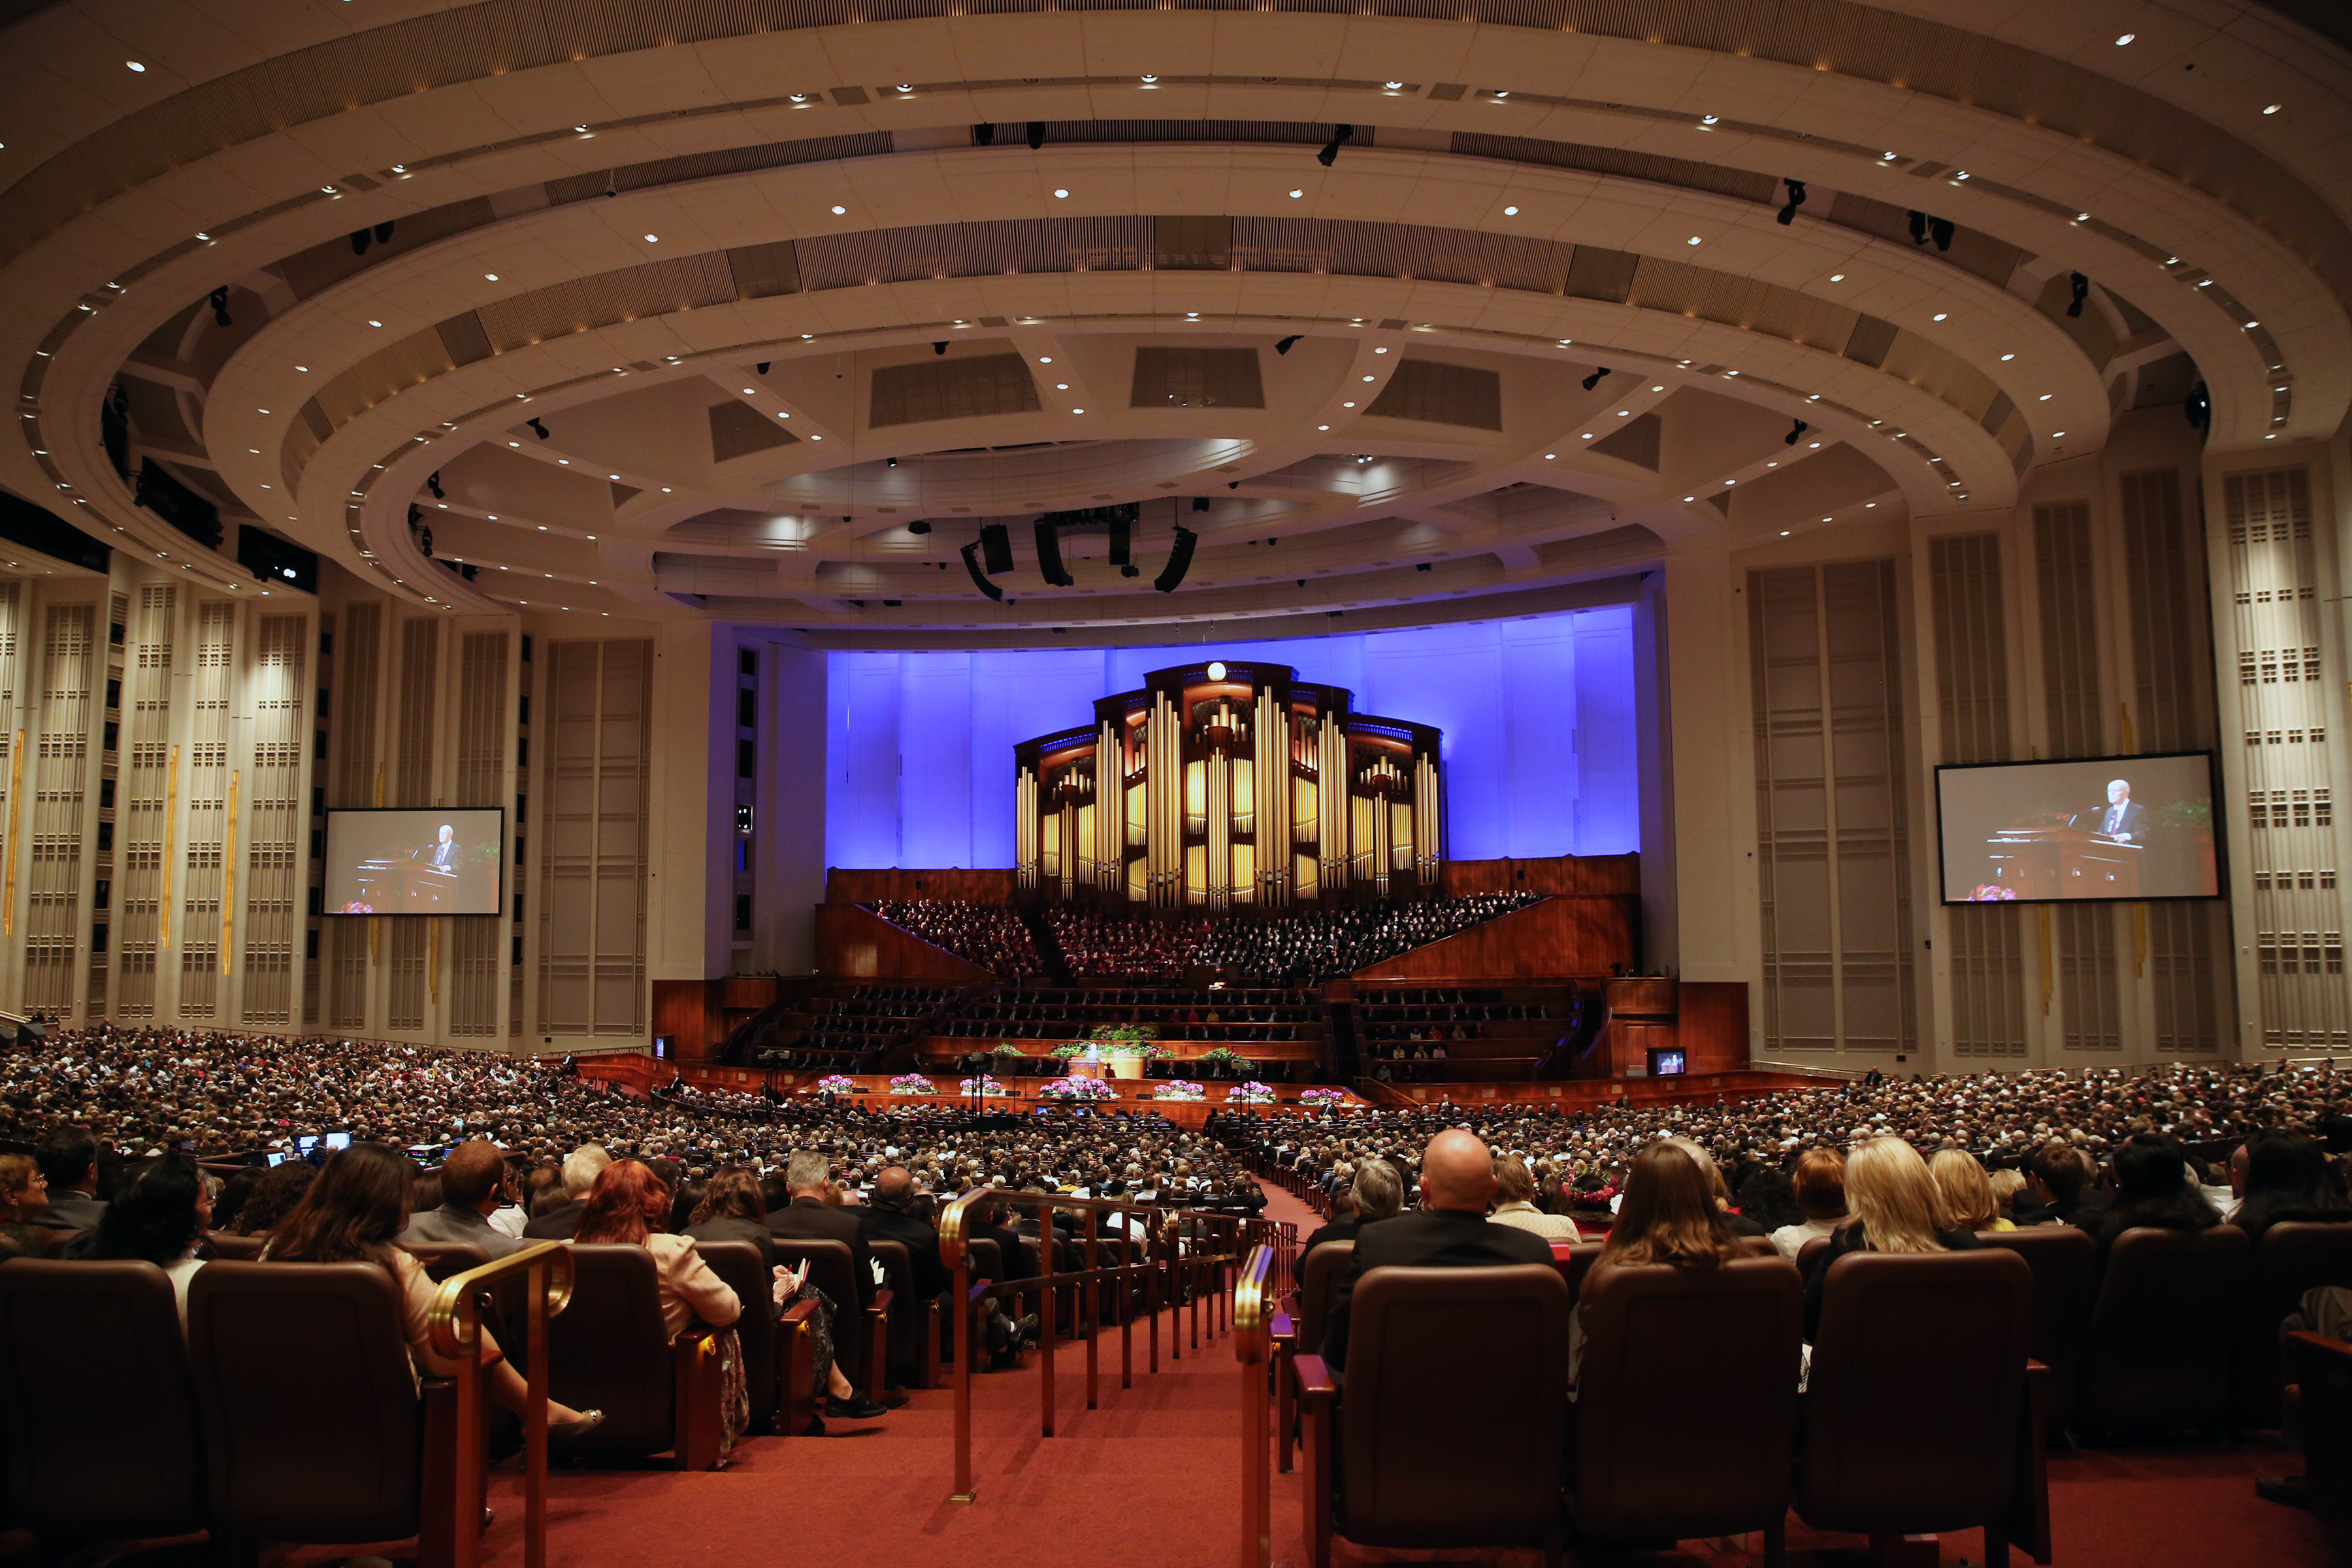 The morning session of the 185th Semiannual General Conference of The Church of Jesus Christ of Latter-day Saints at the Conference Center in Salt Lake City on Sunday, Oct. 4, 2015.